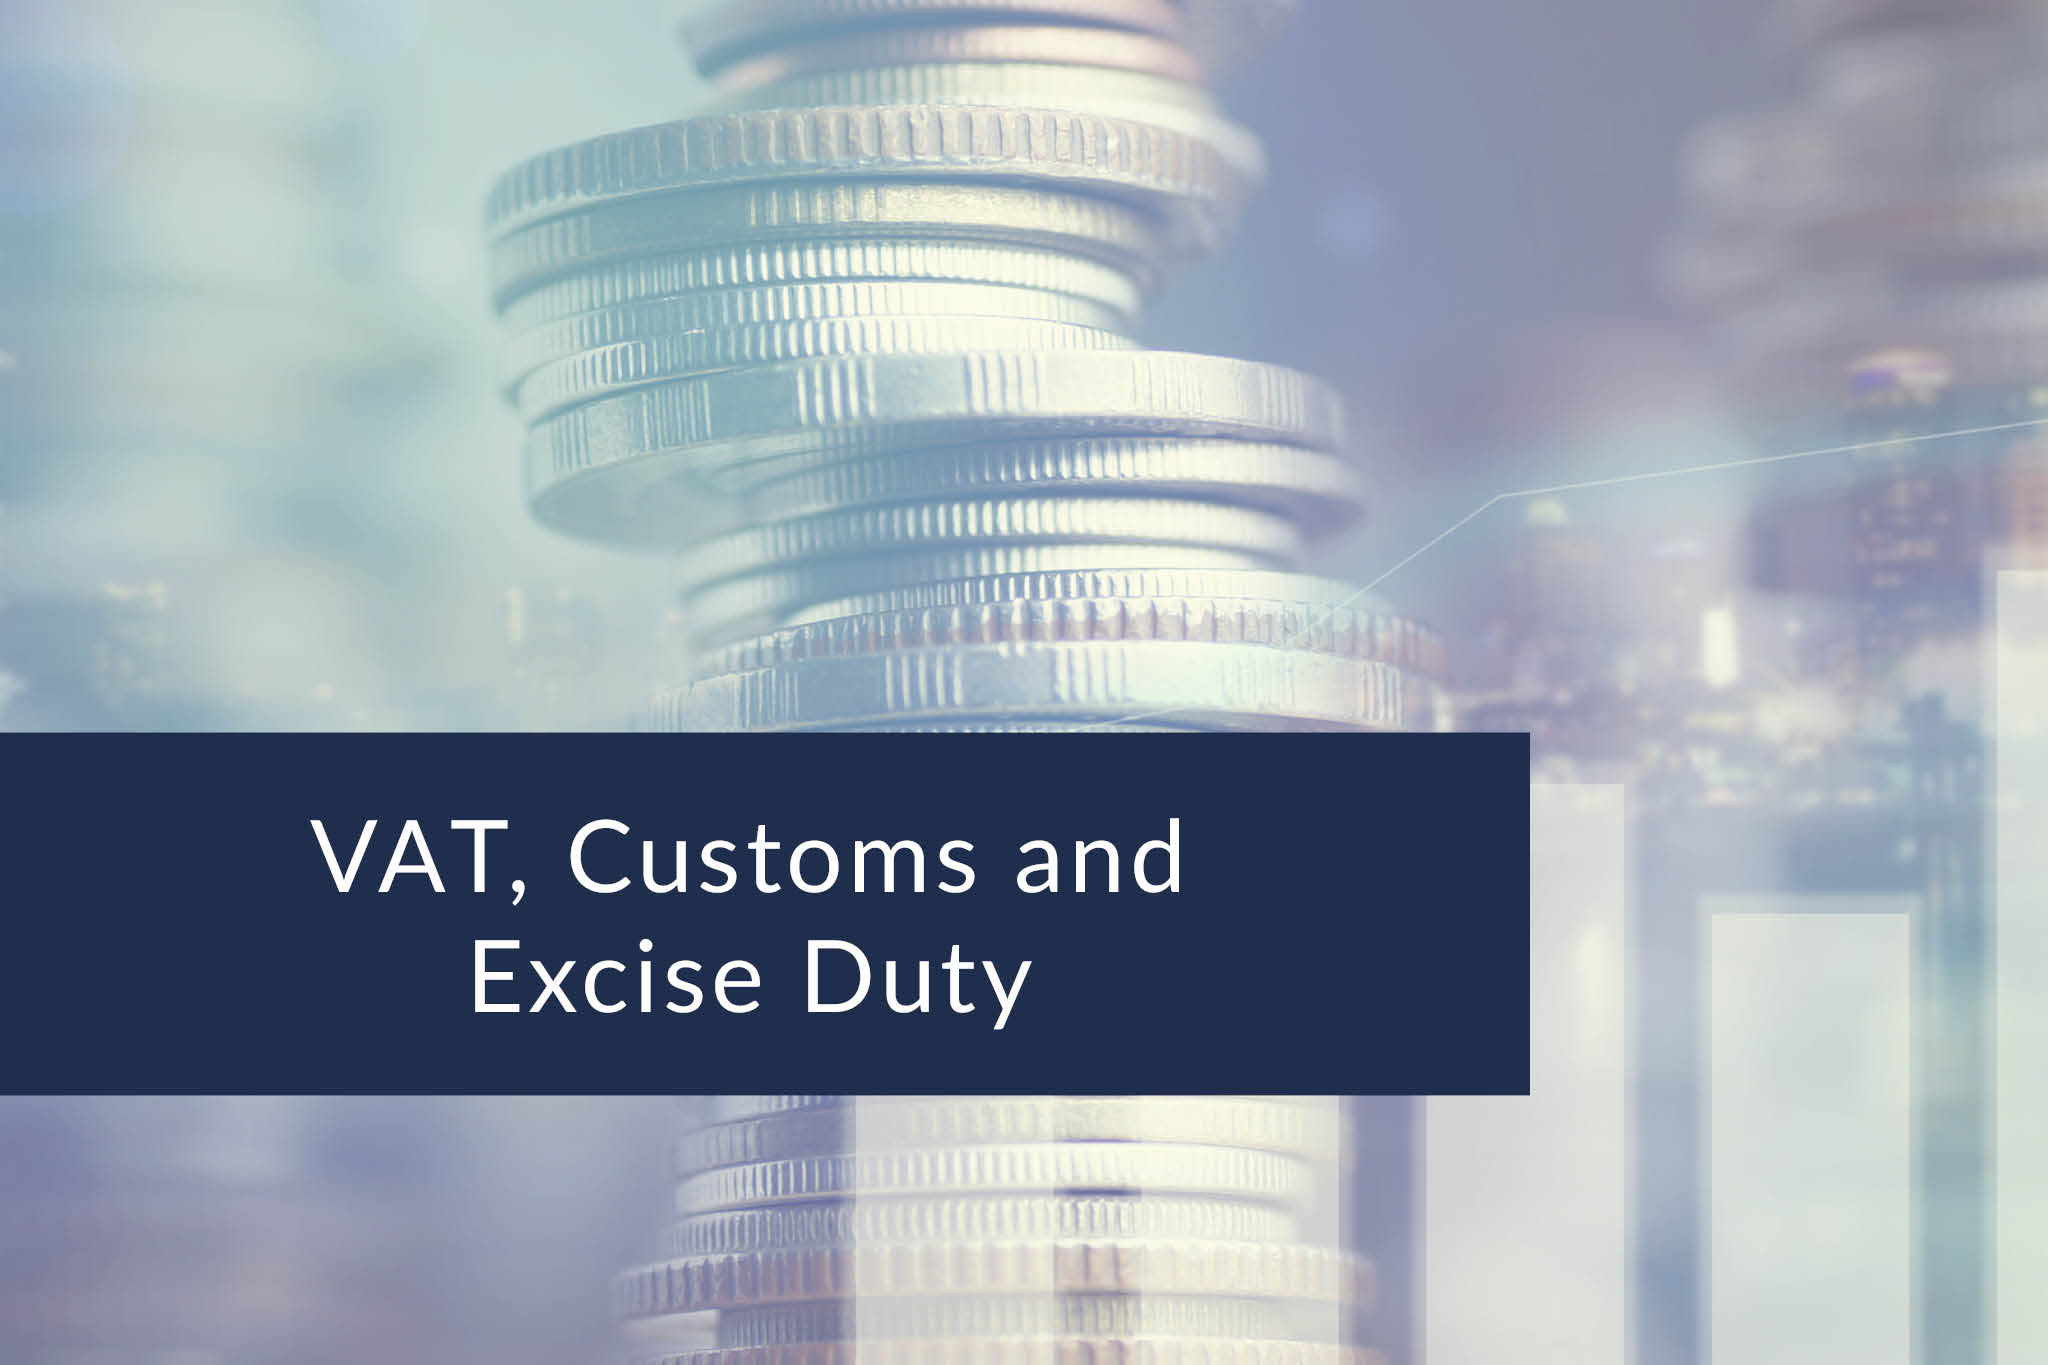 VAT, customs and excise duty